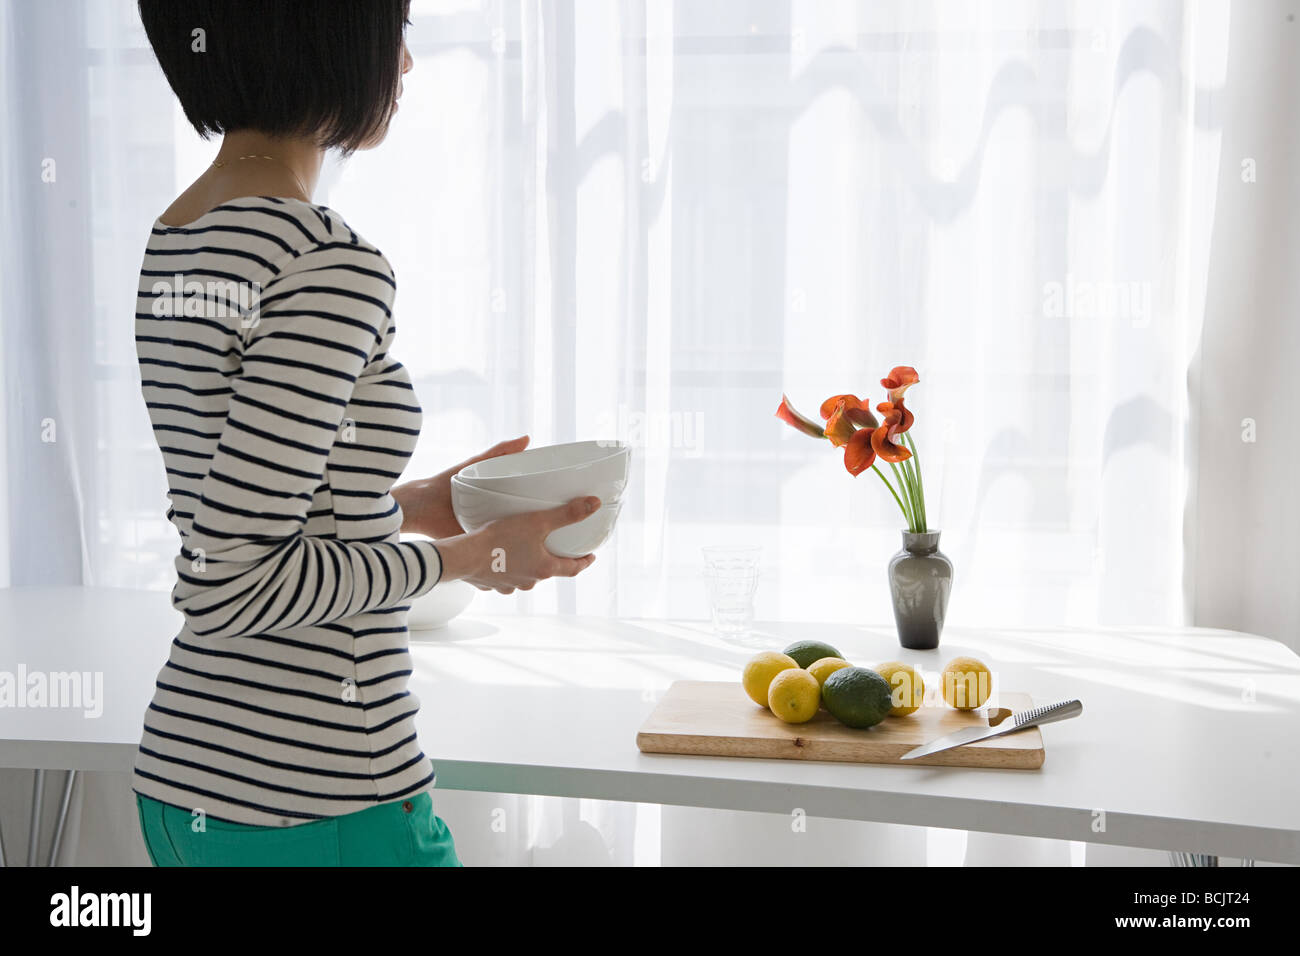 Japanese woman standing at window - Stock Image